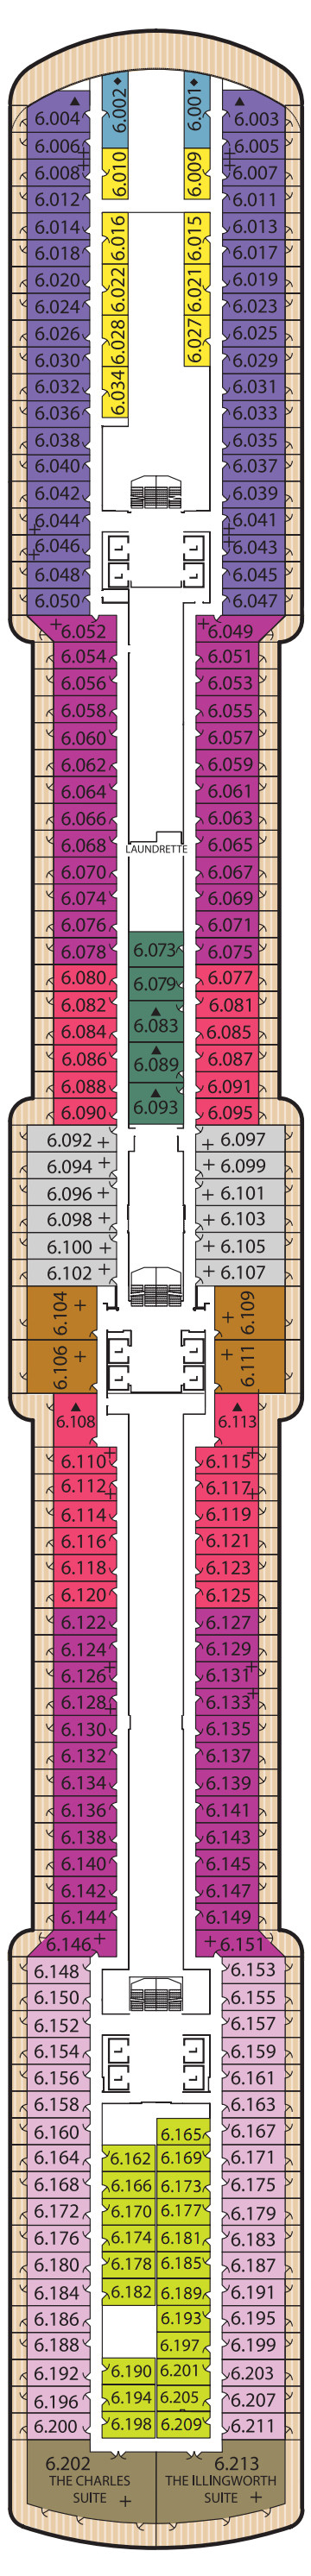 Queen Elizabeth Deck 6 layout